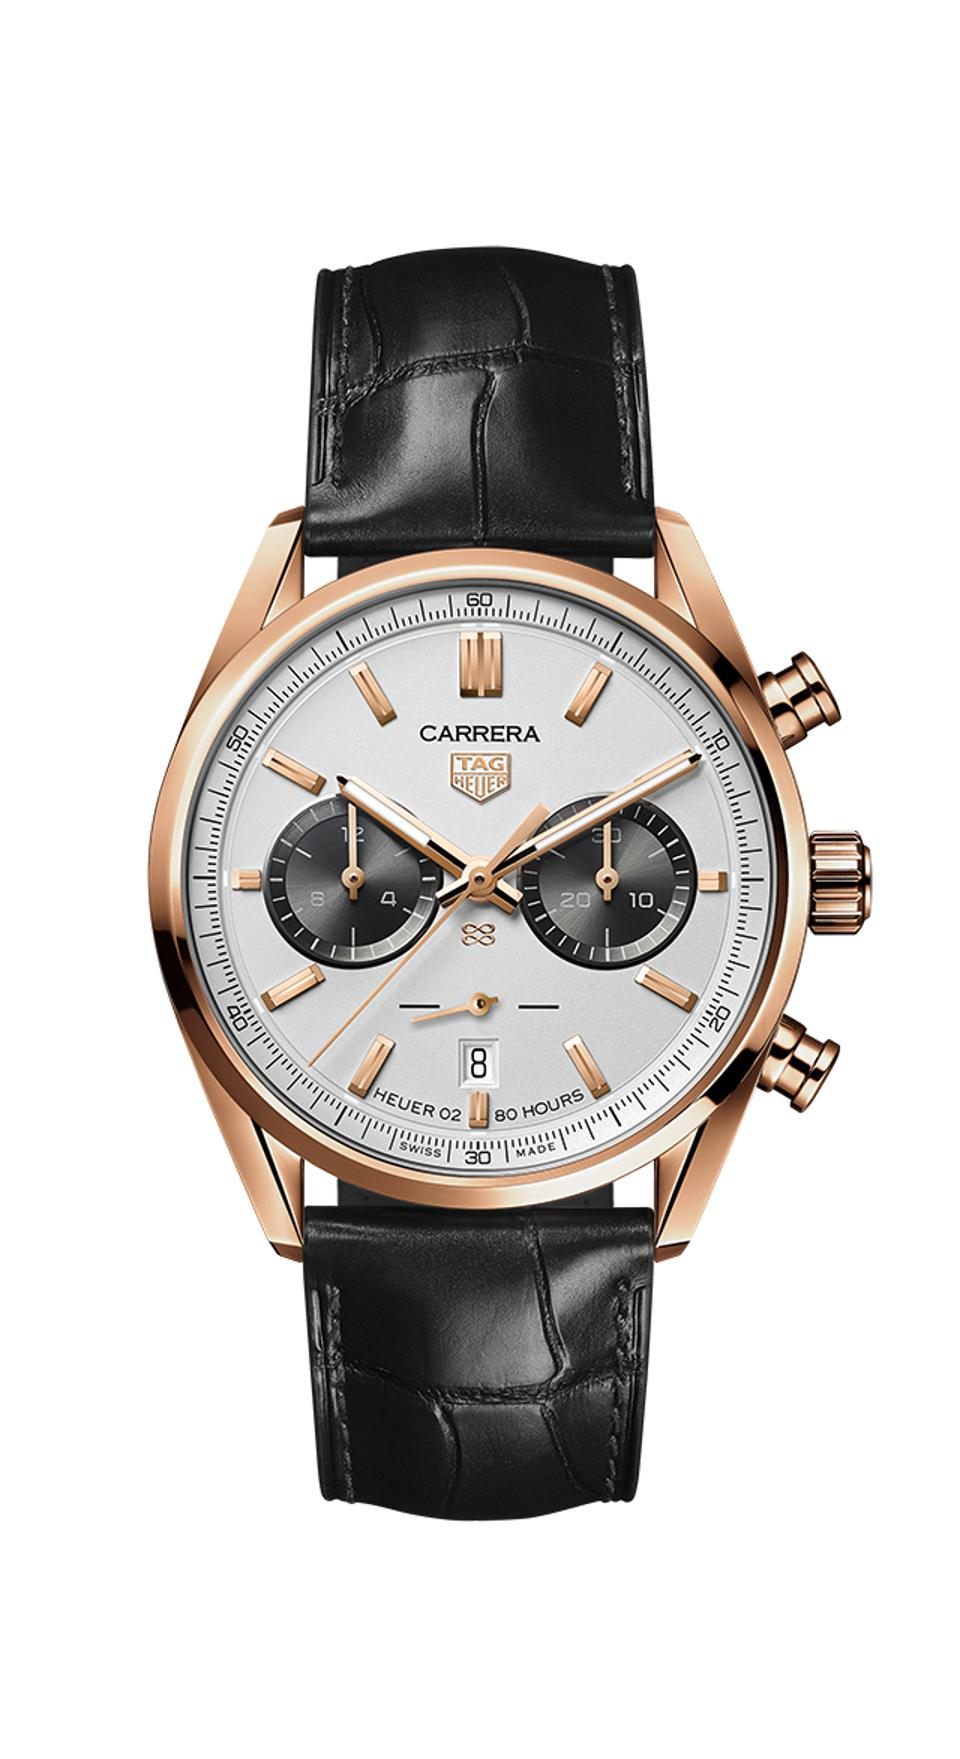 TAG Heuer Carrera for Jack Heuer's 88th birthday.